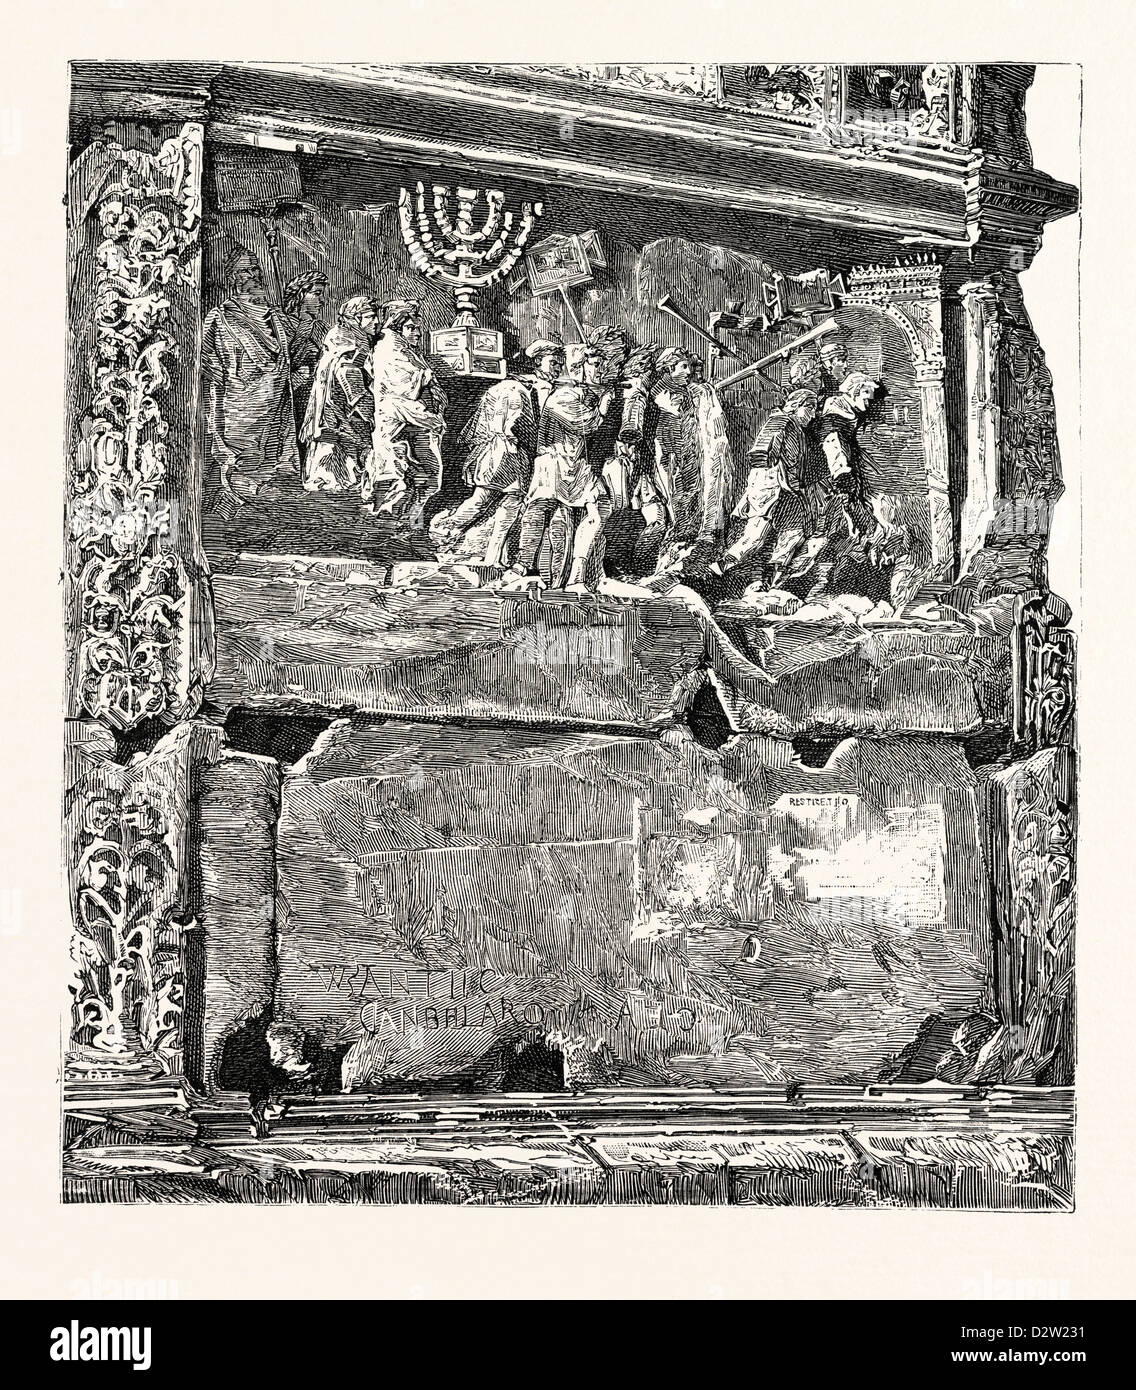 FRIEZE FROM THE ARCH OF TITUS. Rome Italy - Stock Image